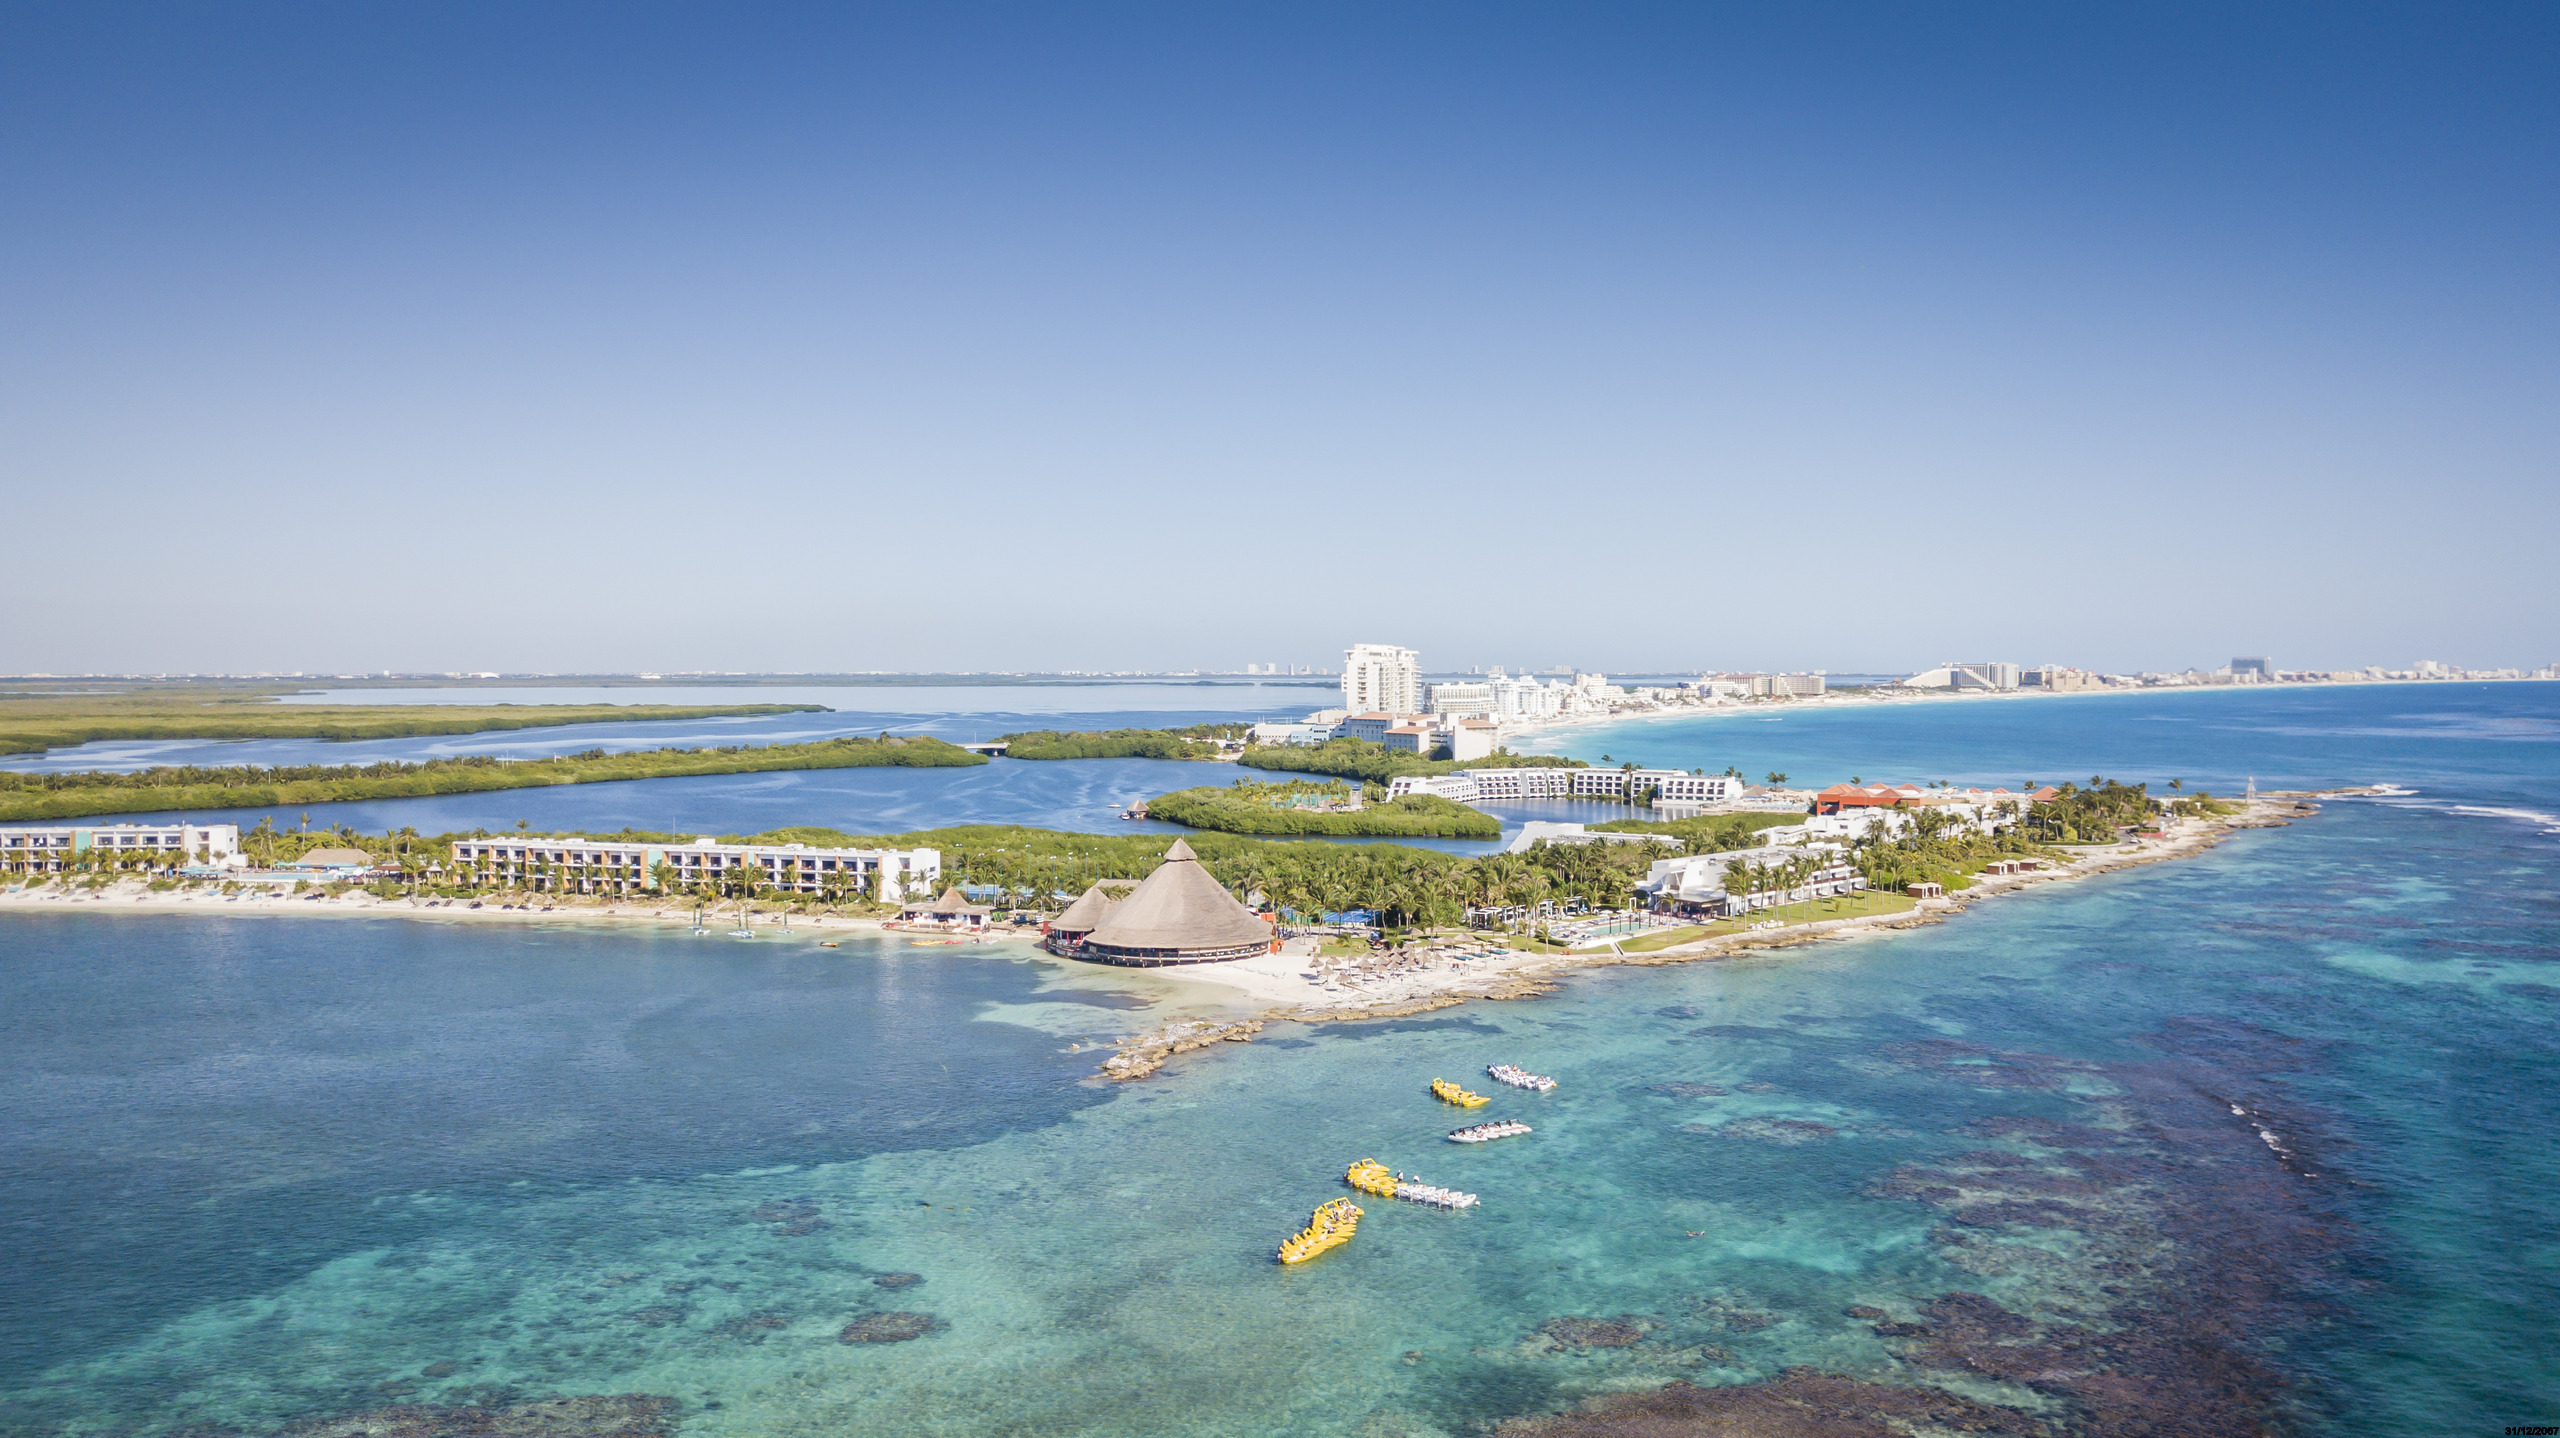 Club Med Cancun - aerial